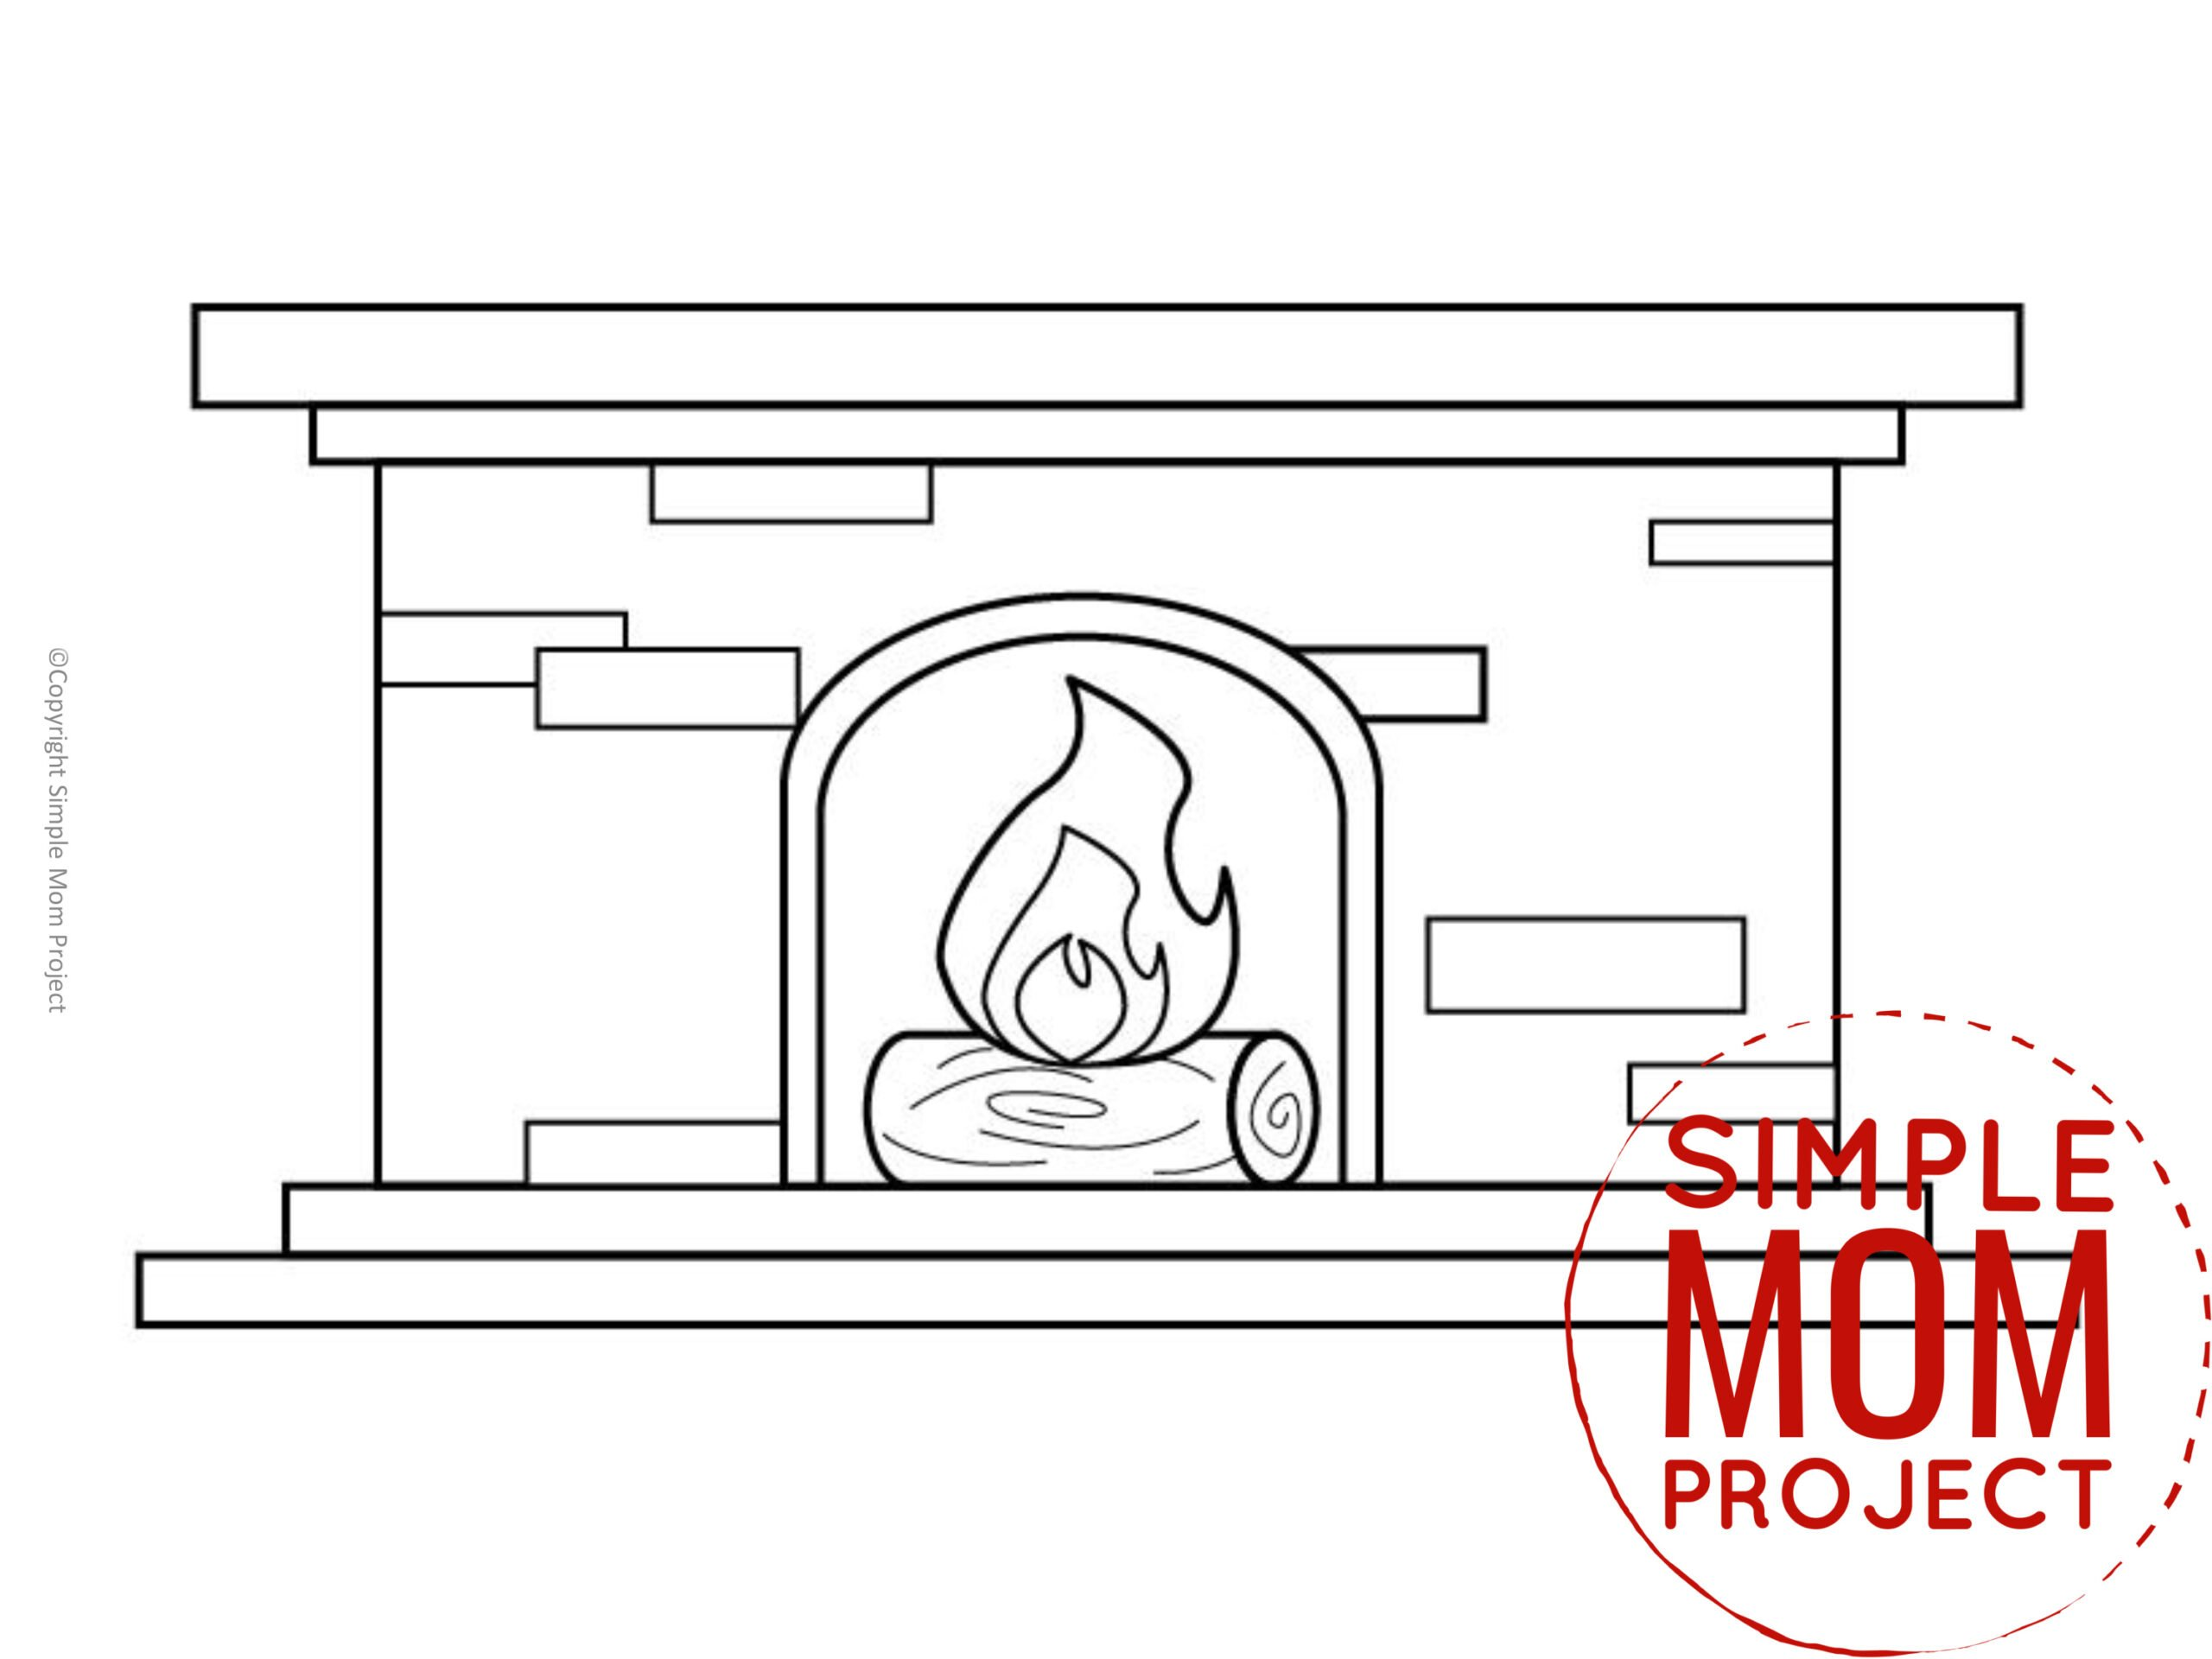 Printable Fireplace Template for kids preschoolers toddlers